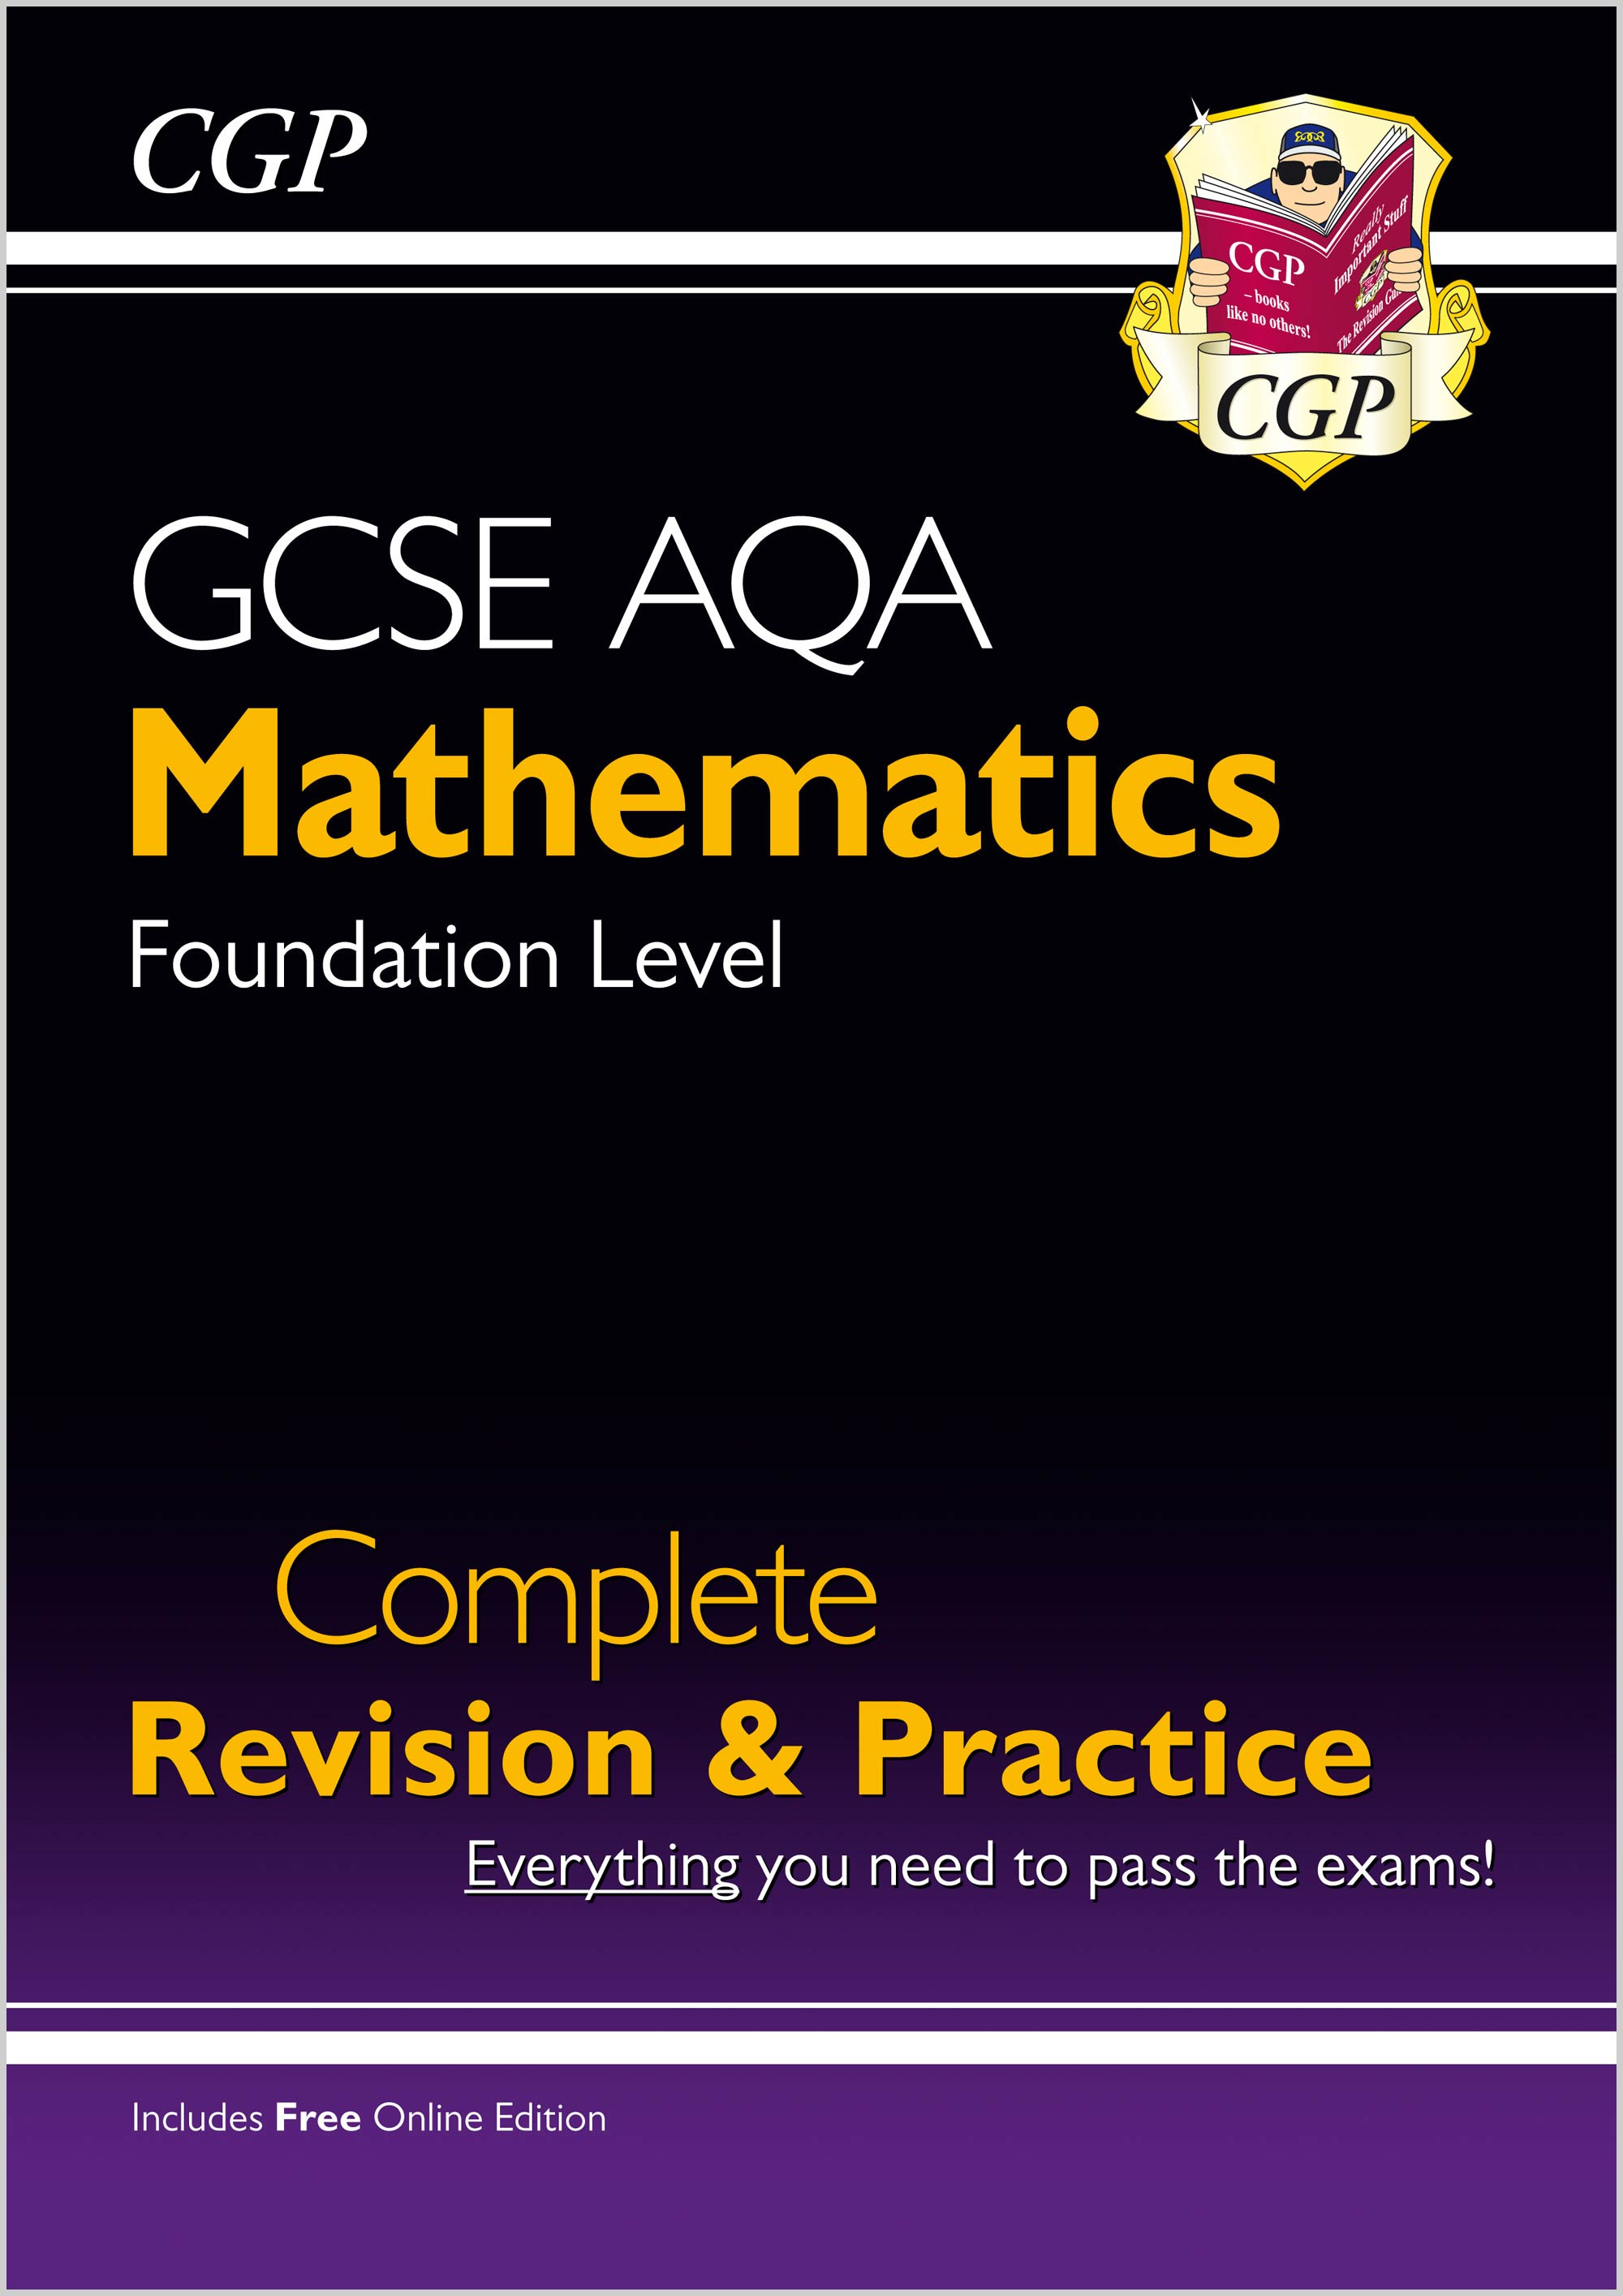 MQFS41 - New GCSE Maths AQA Complete Revision & Practice: Foundation - Grade 9-1 Course (with Online